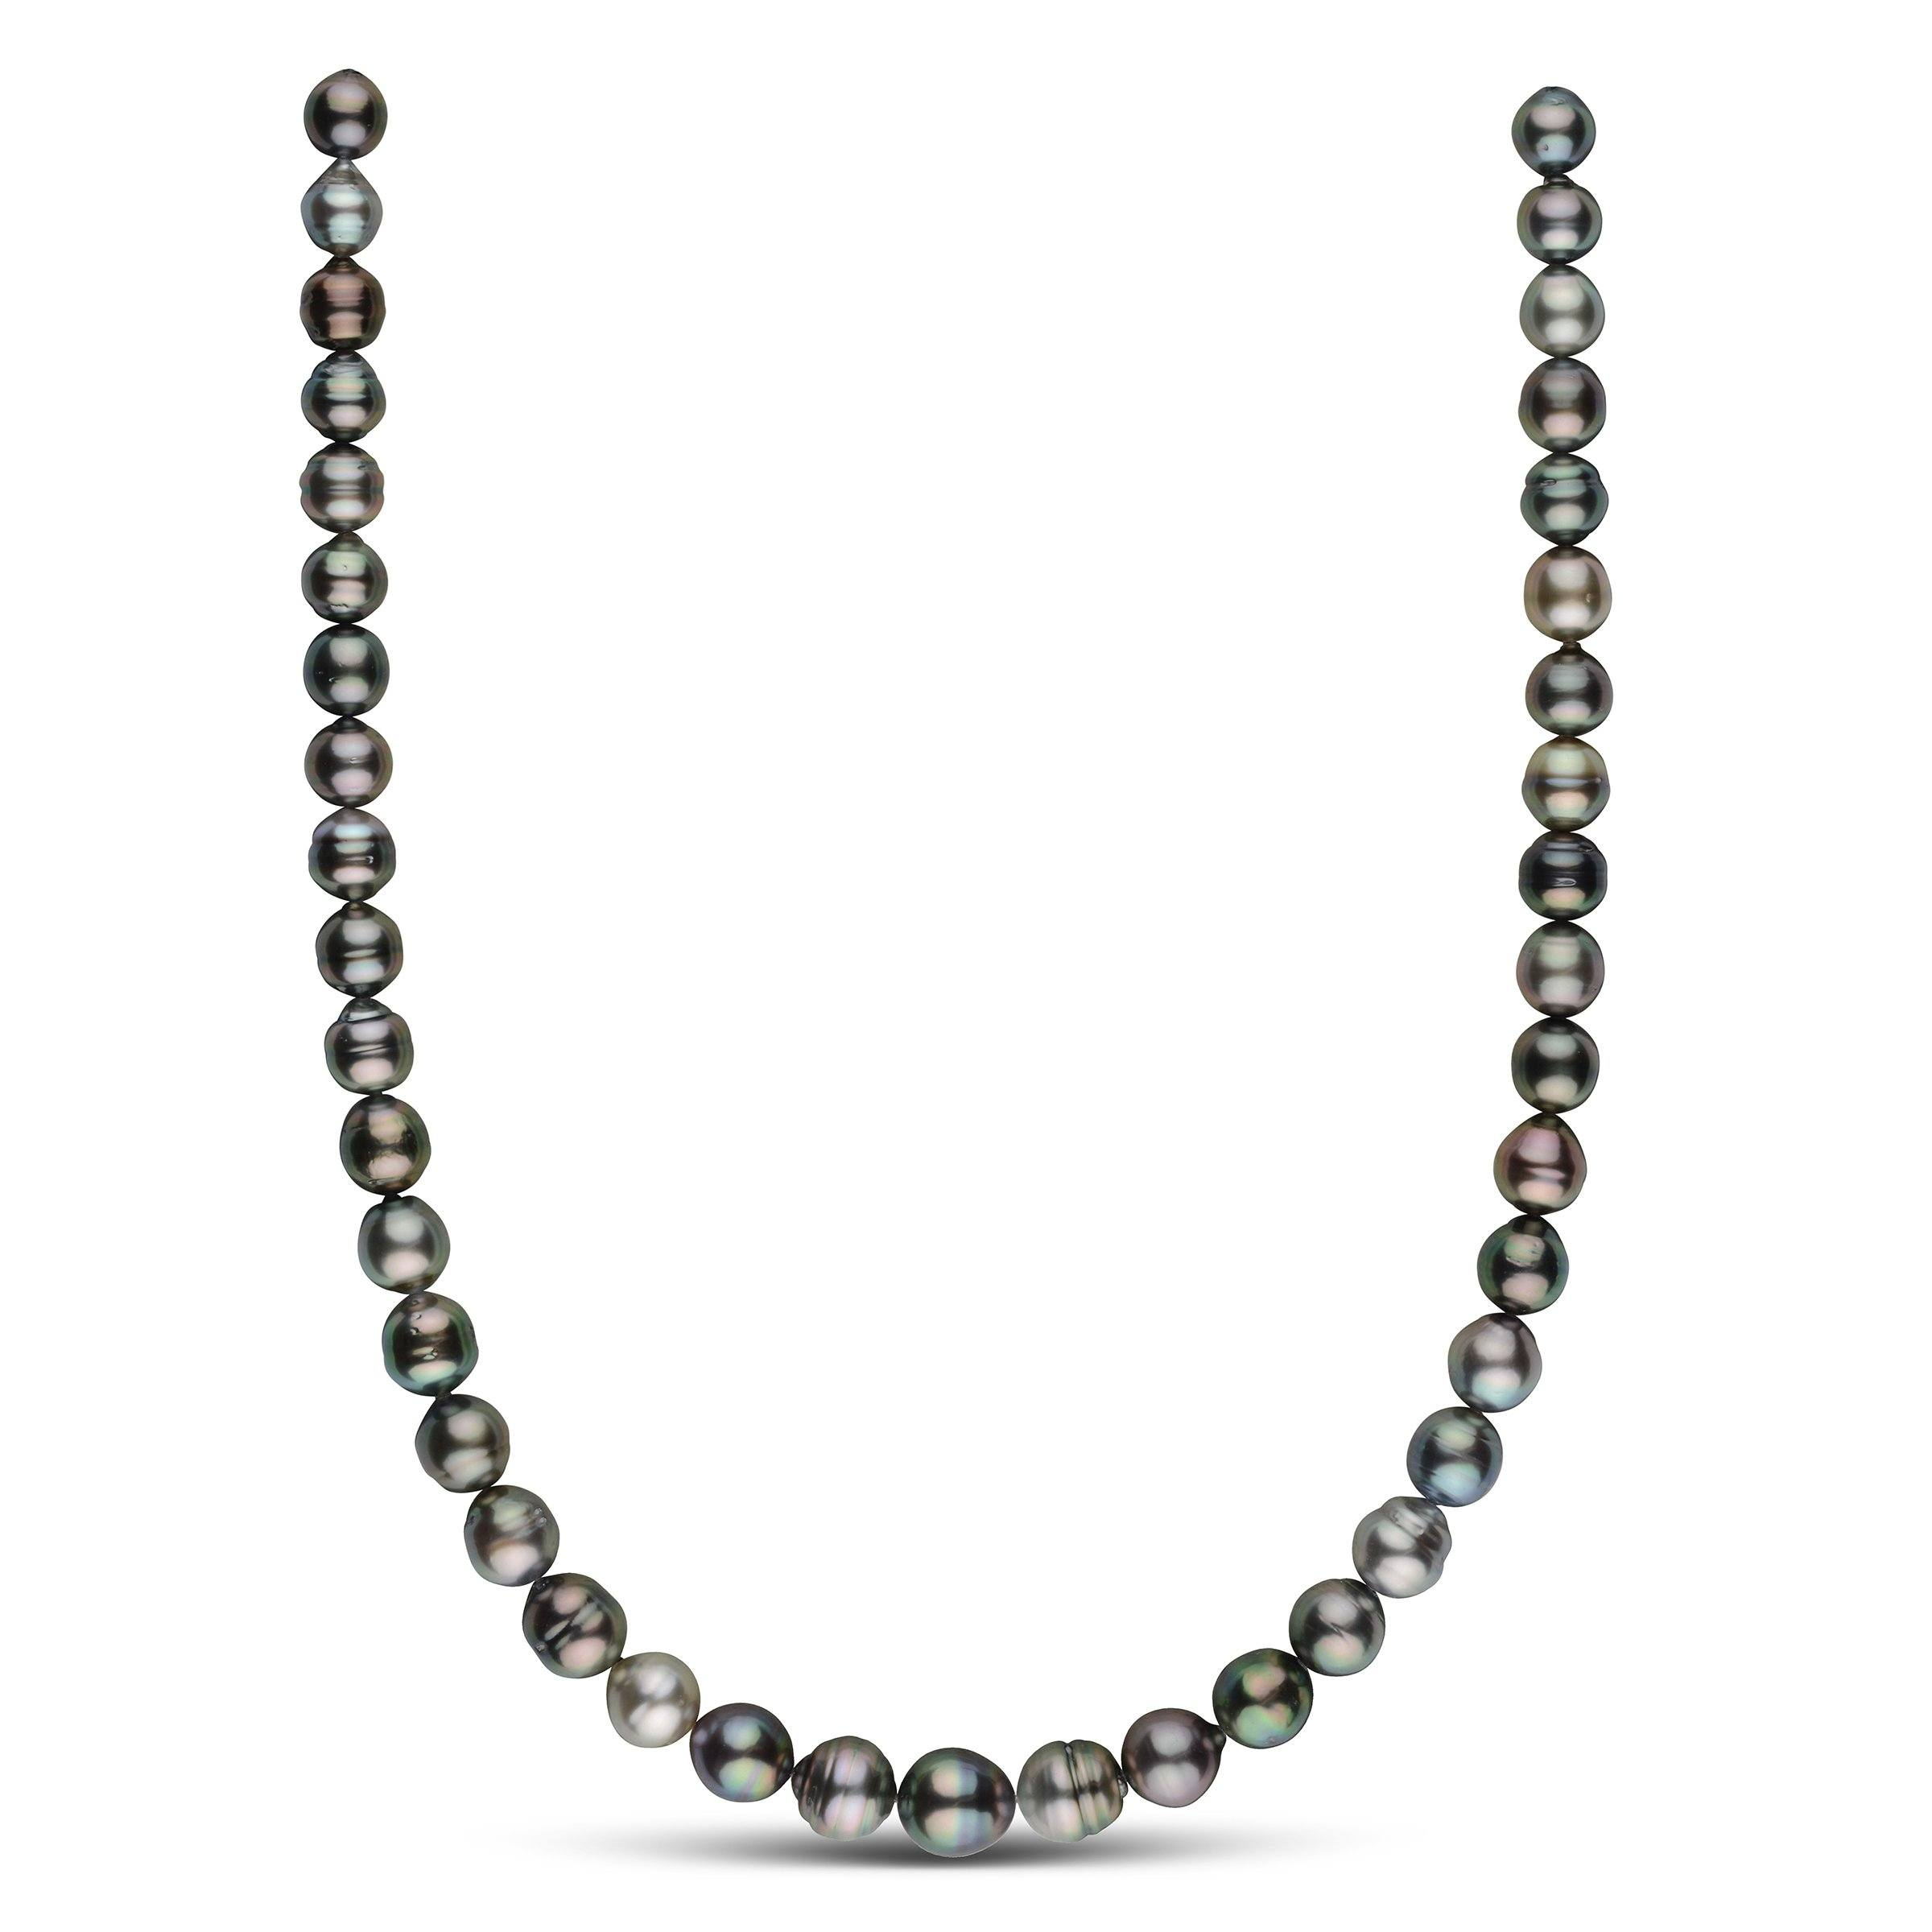 8.4-10.4 mm AA+/AAA Tahitian Baroque Pearl Necklace